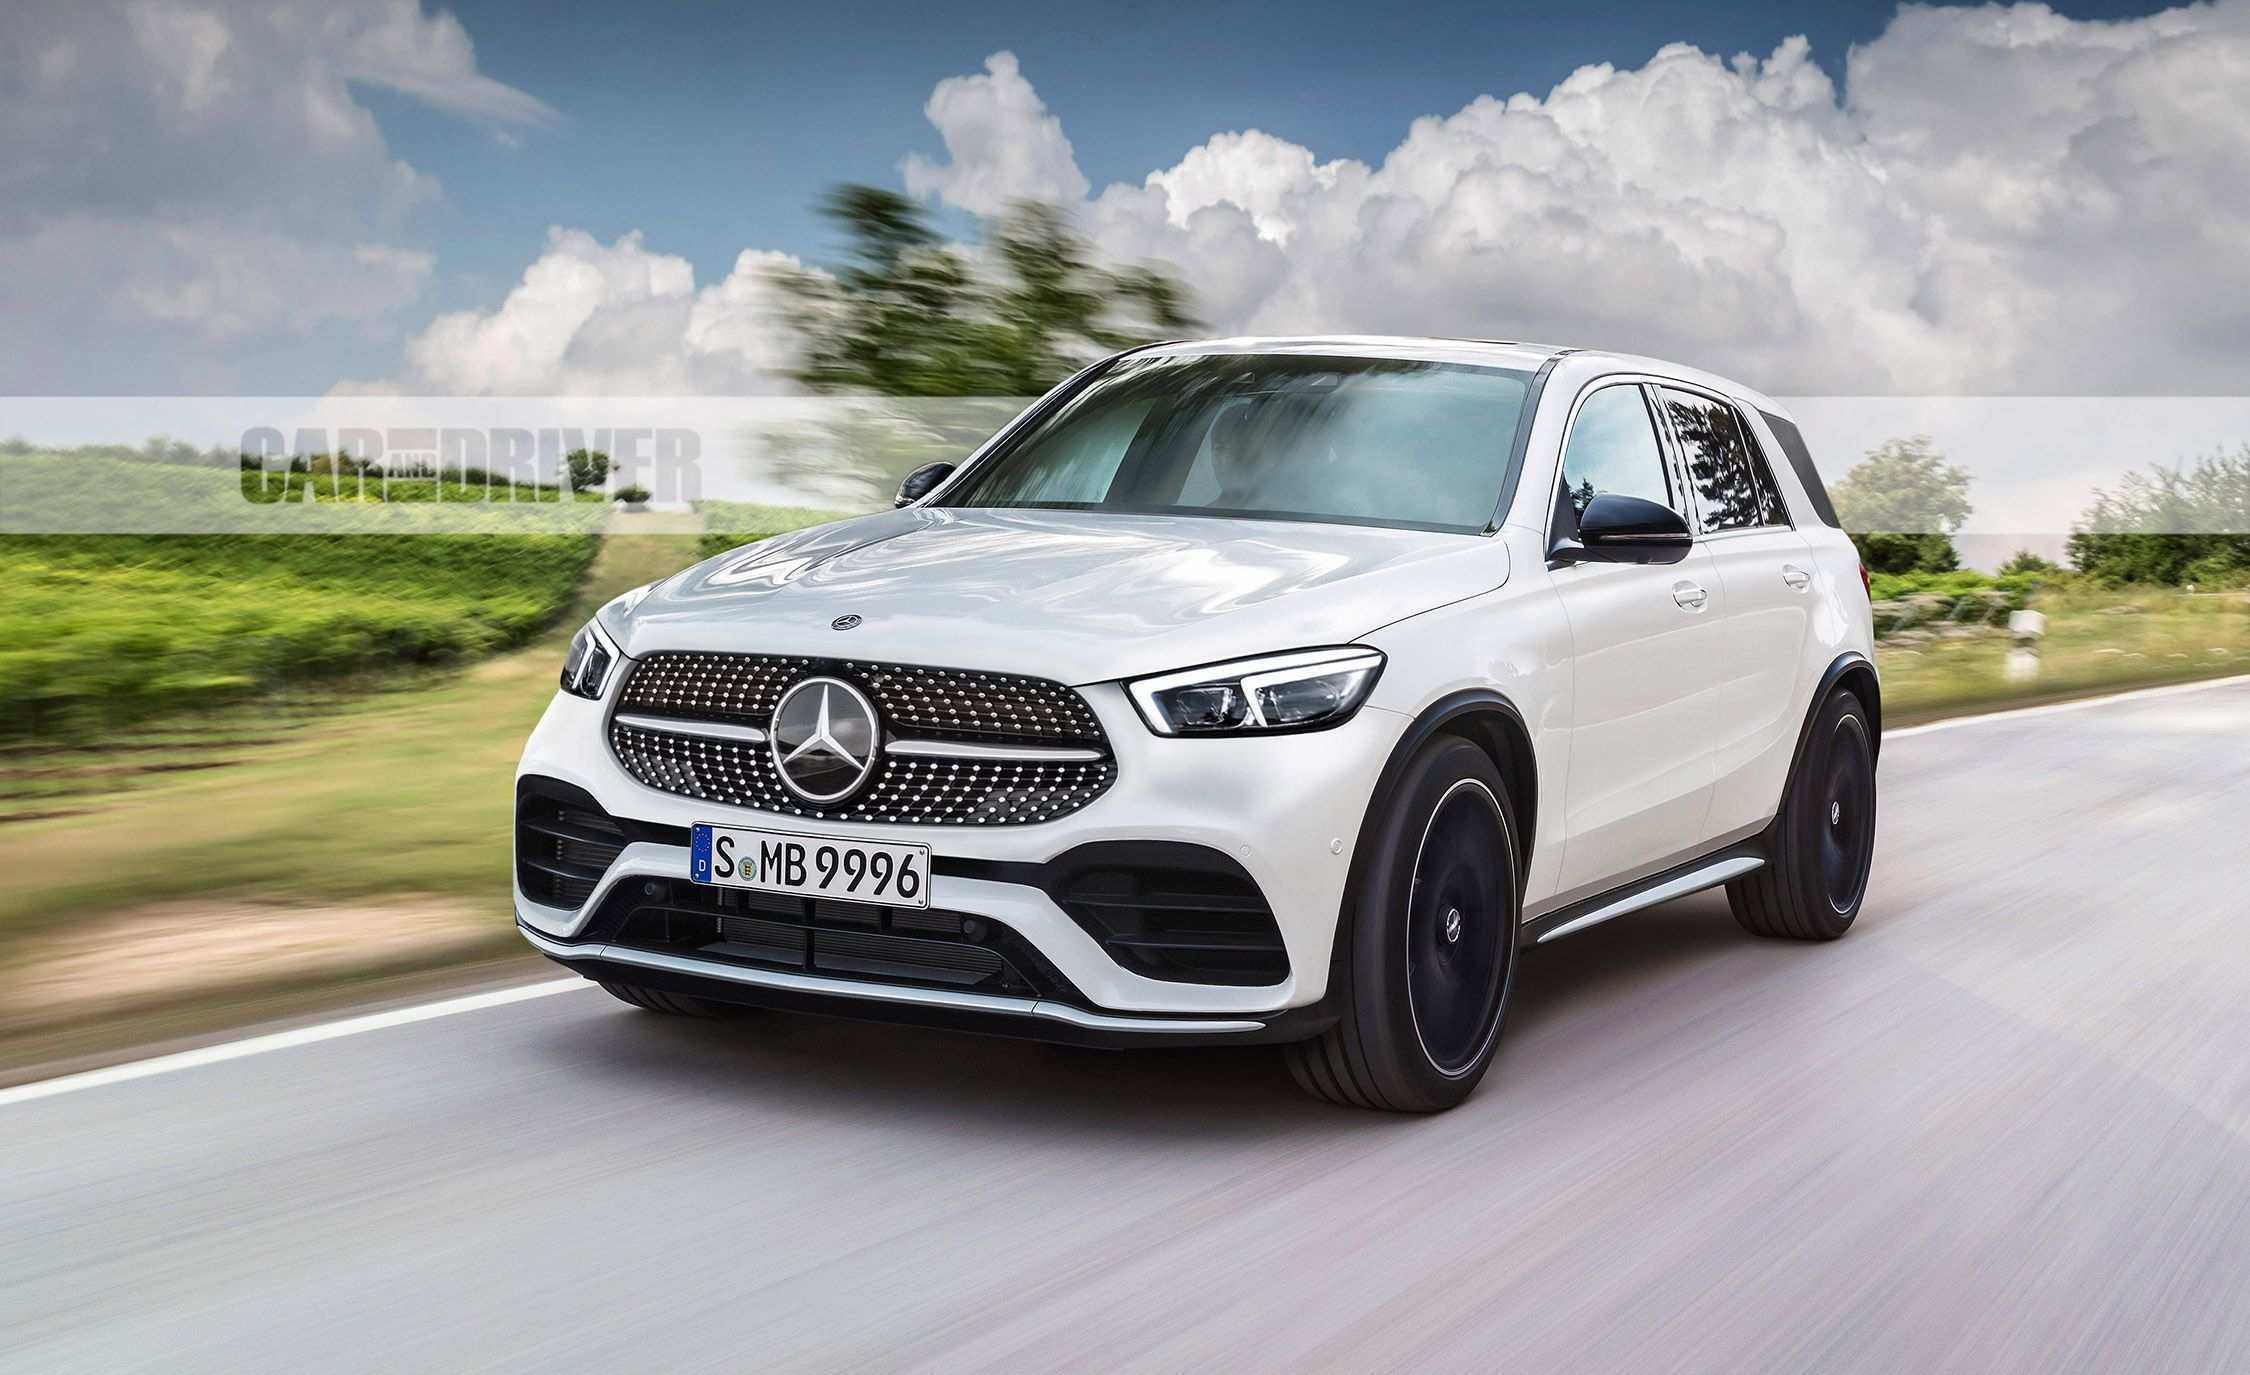 59 All New White Mercedes 2020 New Review with White Mercedes 2020